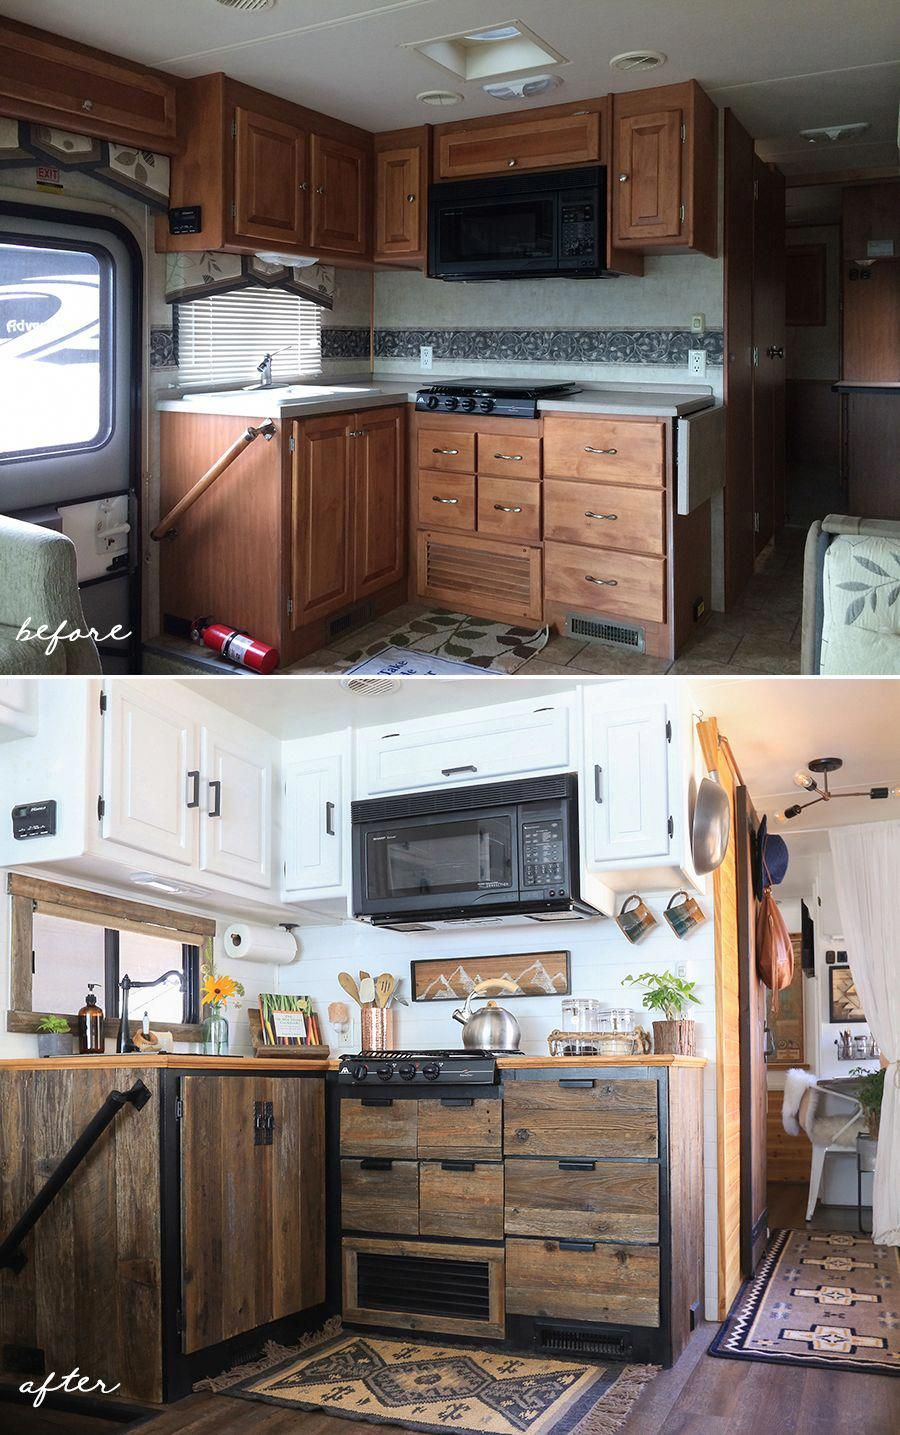 Amazing Rustic Camper Kitchen Ideas To Inspire You Rustic ...